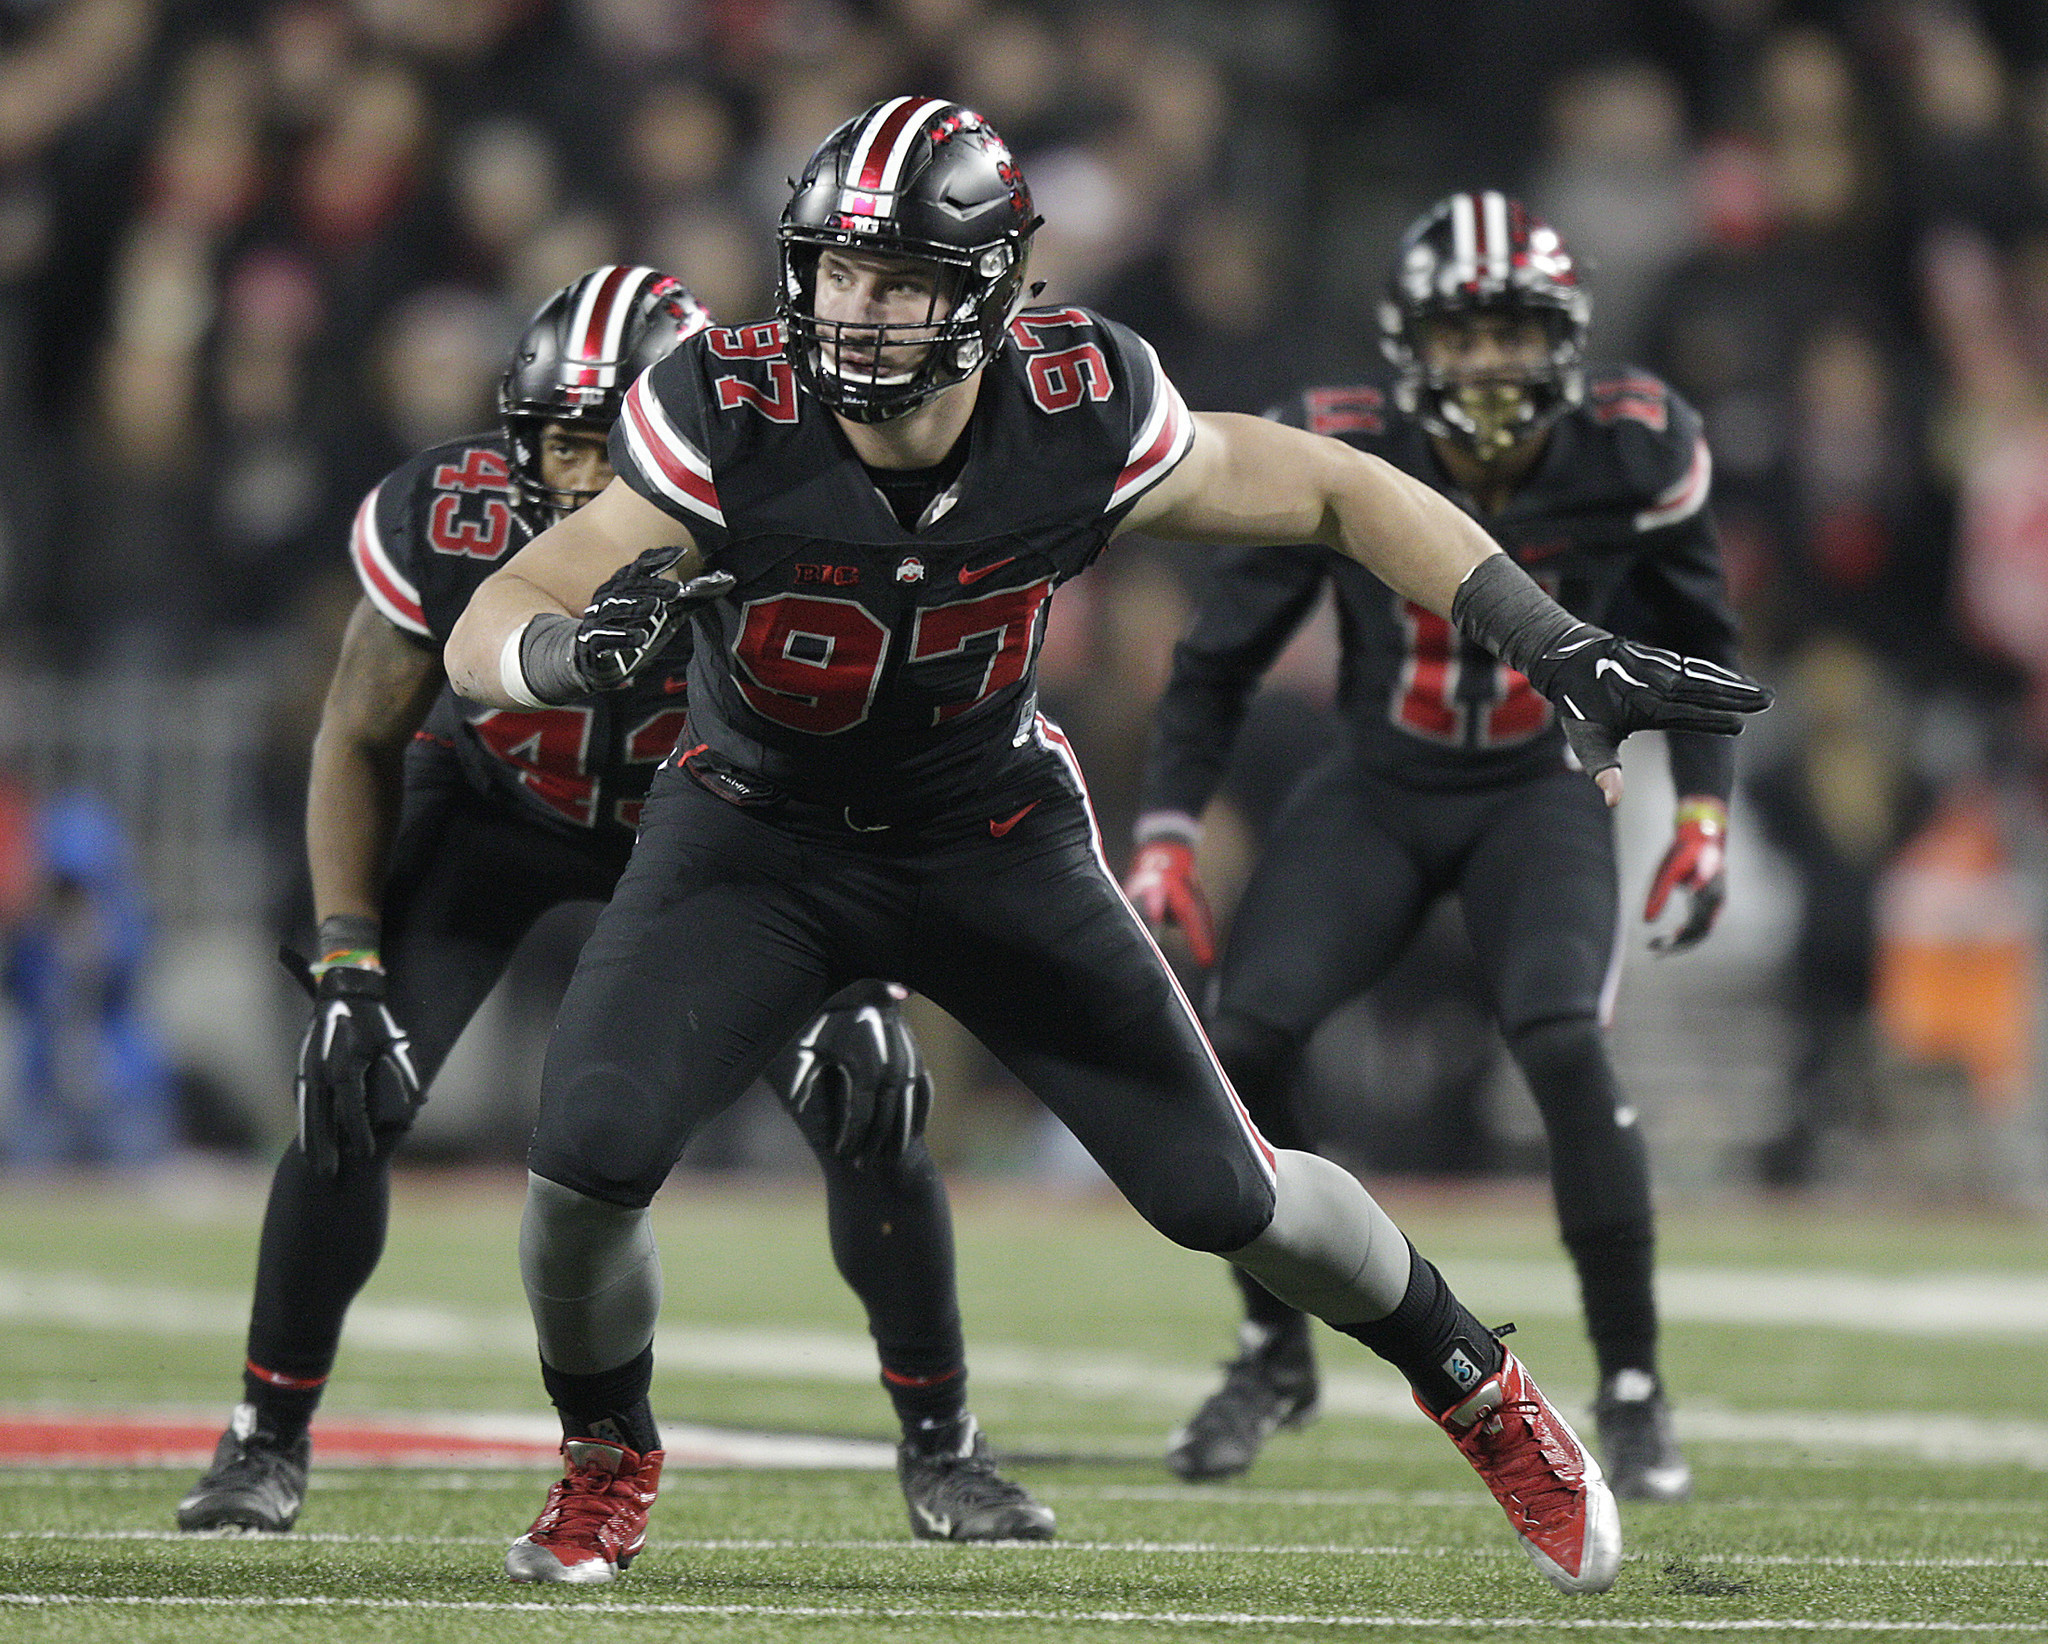 Bal-nfl-draft-prospects-linked-to-ravens-with-sixth-overall-pick-in-mock-drafts-20160203